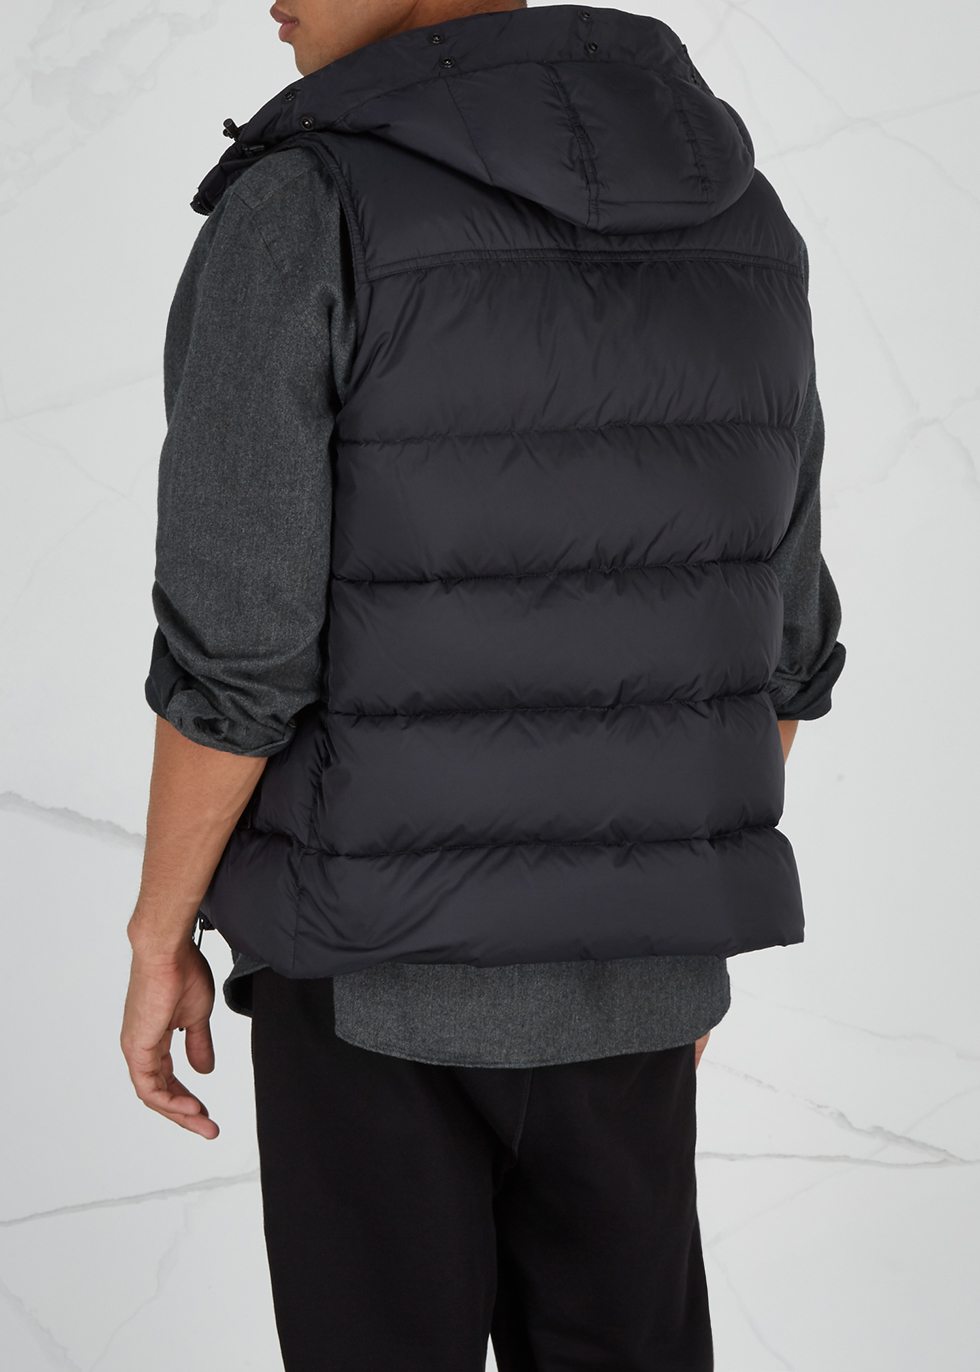 Youri navy fur-trimmed shell gilet - Moncler